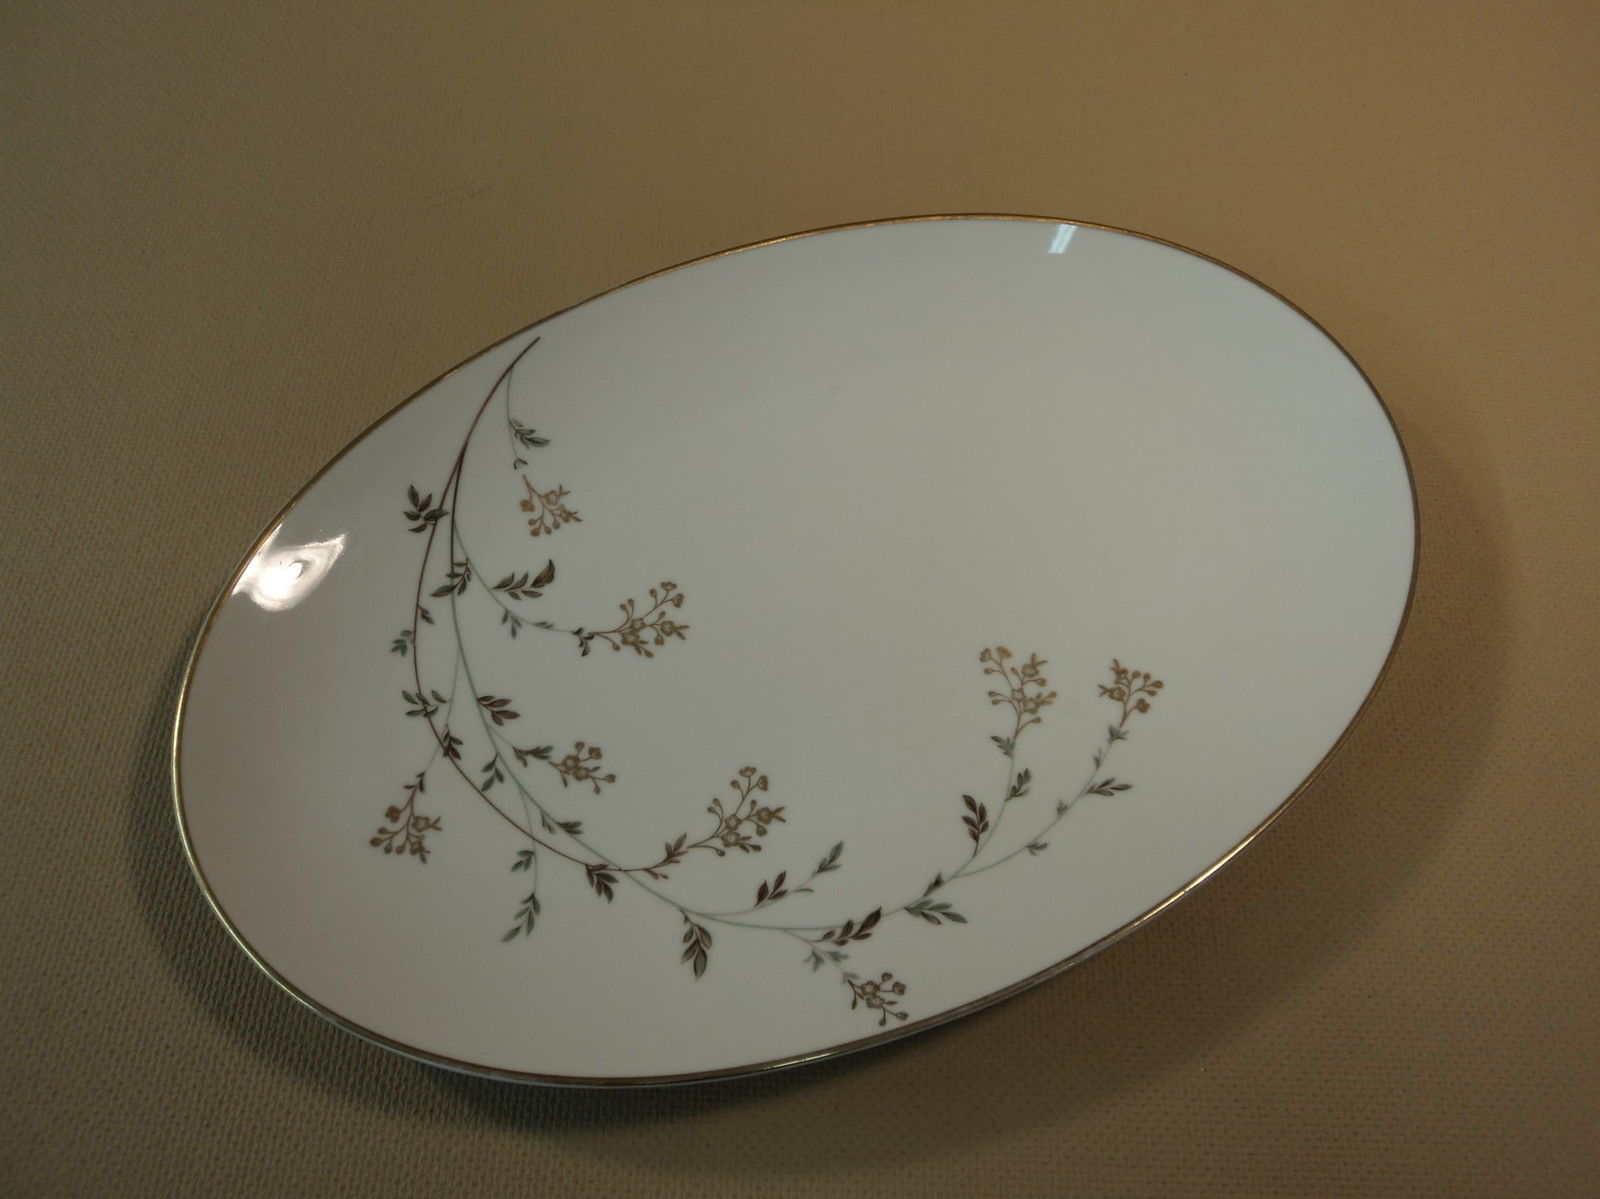 Noritake 5524 Andrea 14in Oval Serving Platter White/Gold/Gray Leafs Stems China